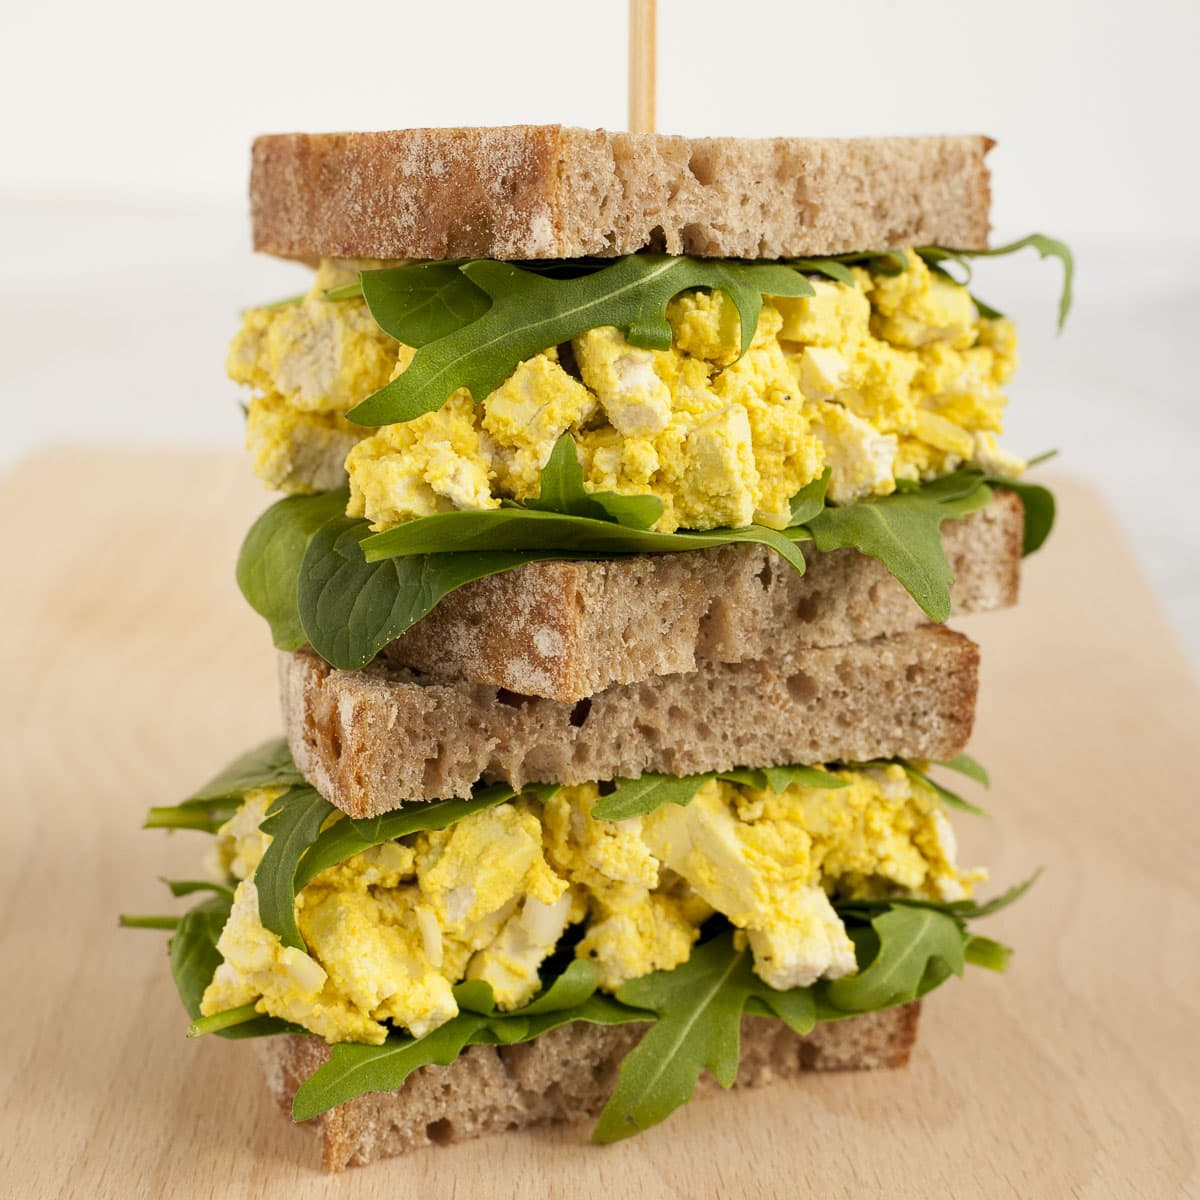 Two vegan egg salad sandwiches on top of each other with arugula and spinach leaves